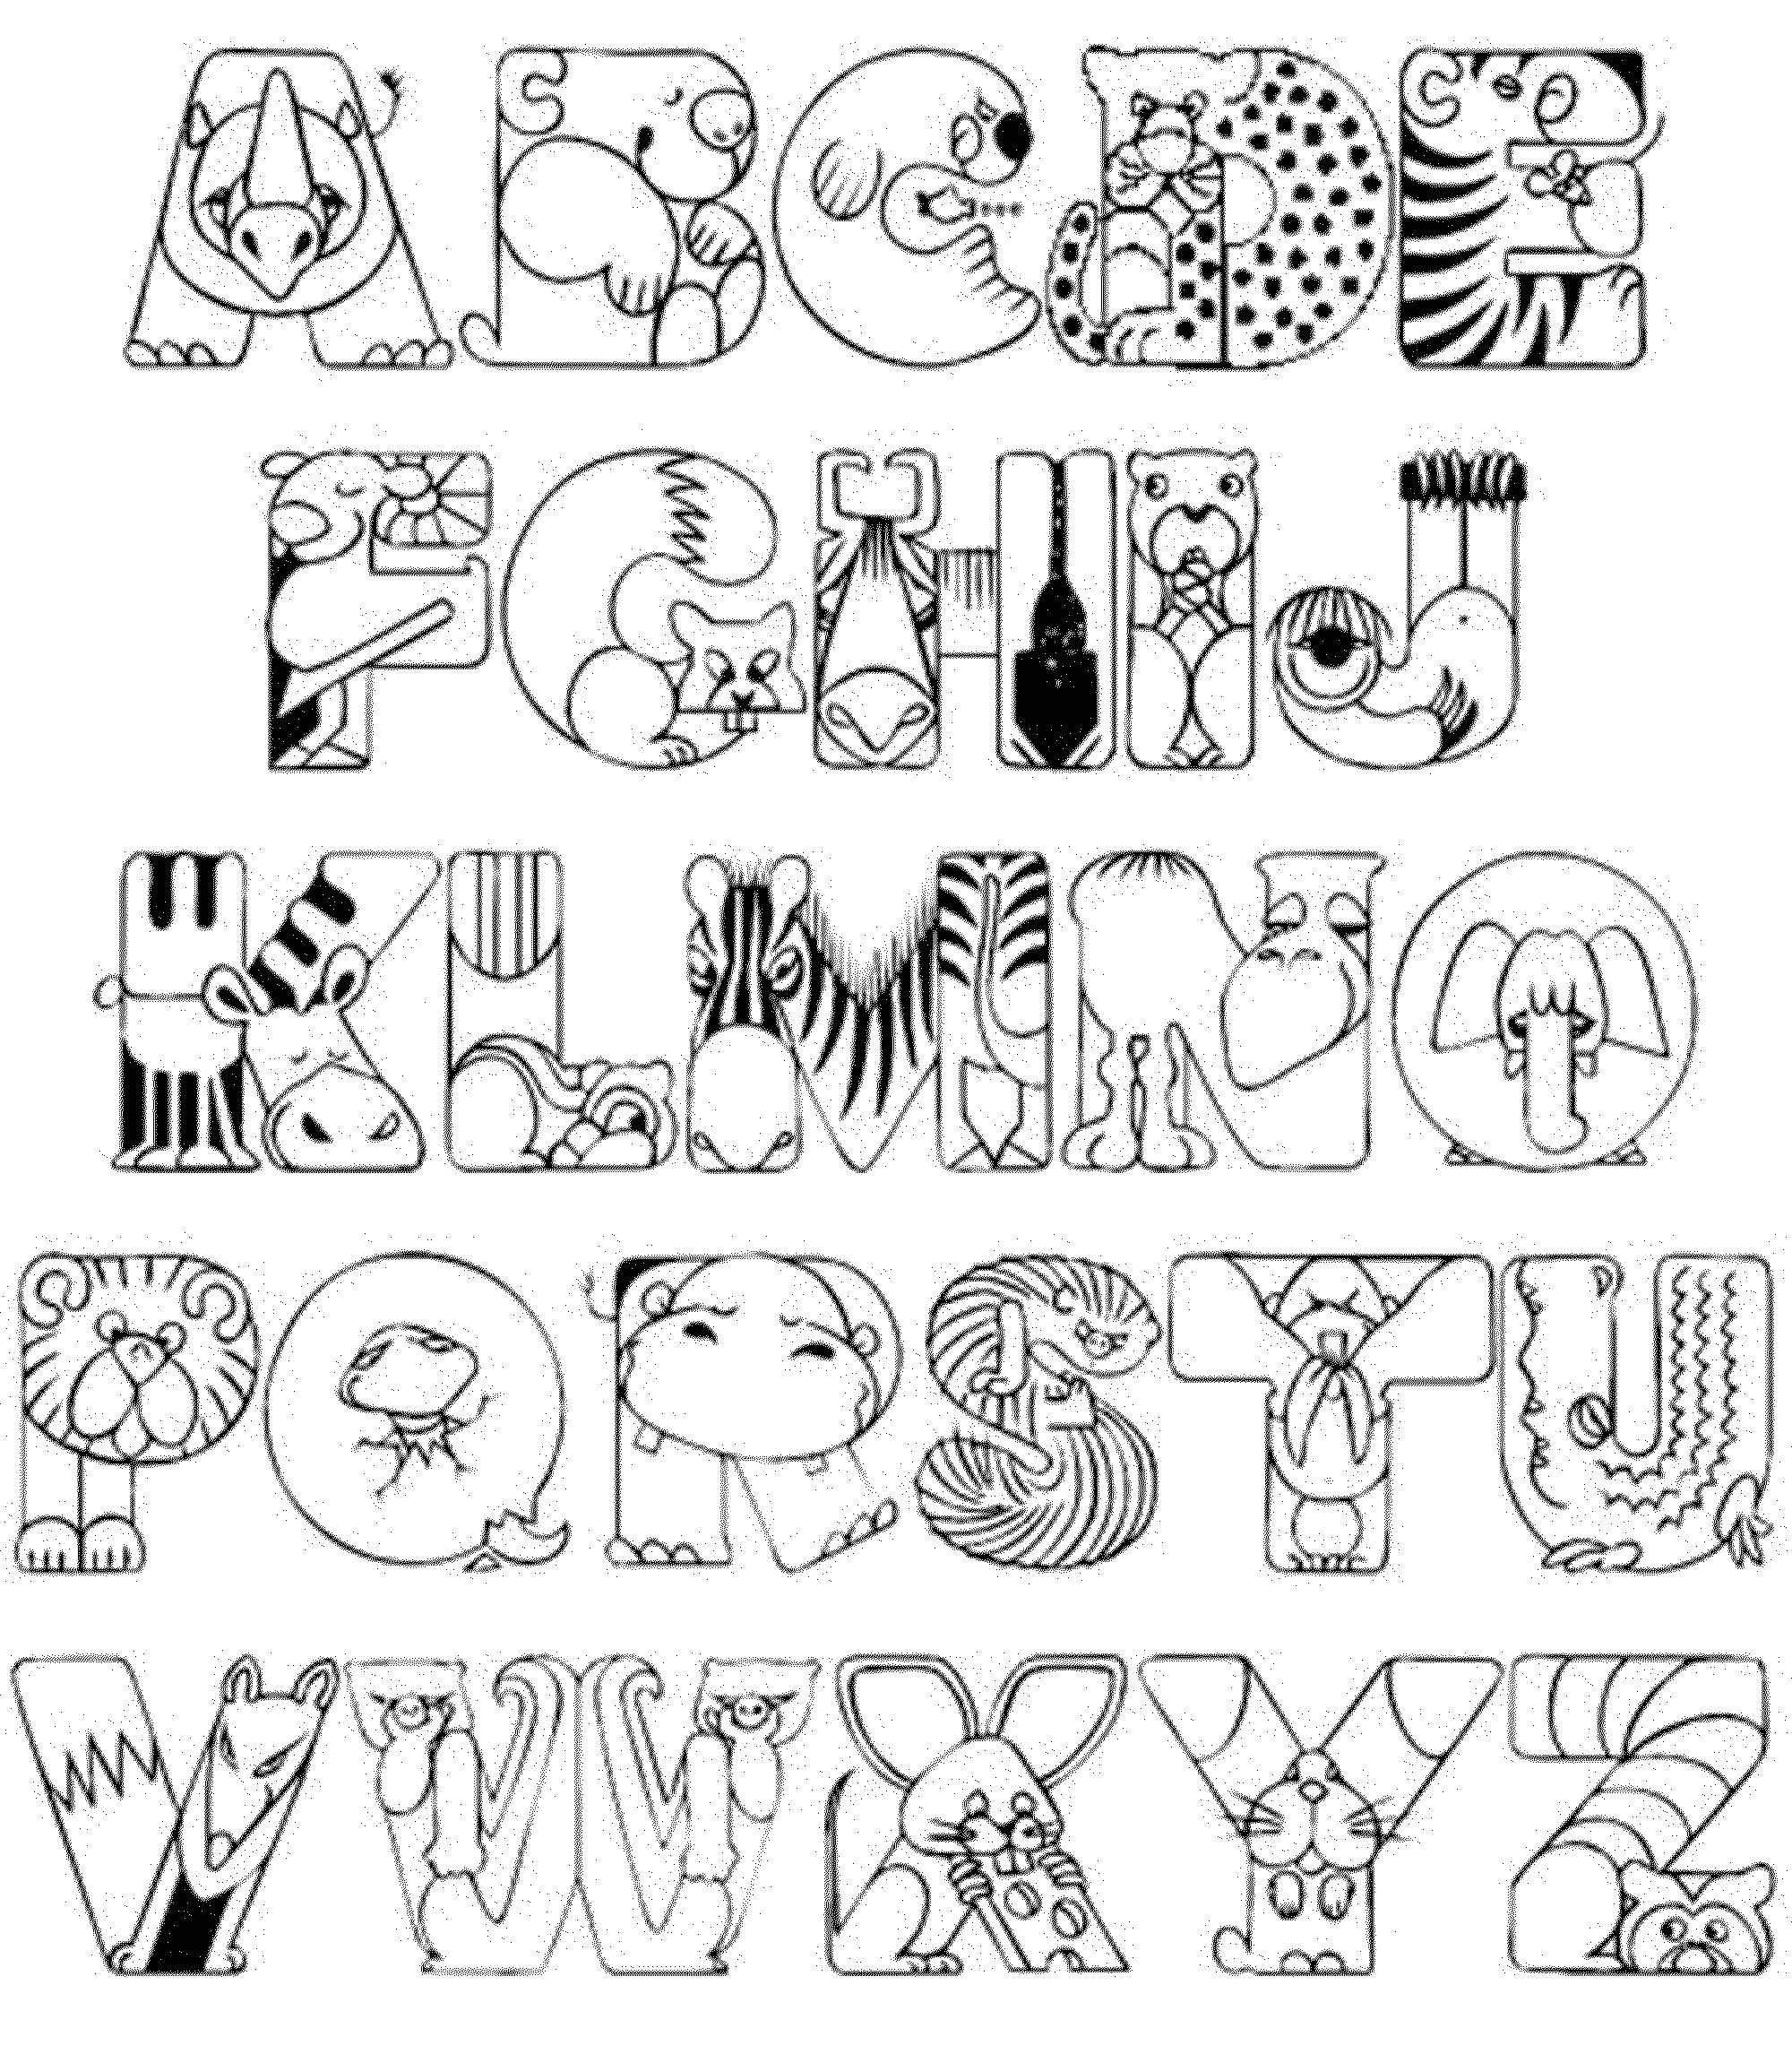 Abc Coloring Pages Glamorous Abccoloringpagesforkindergarten   Bestappsforkids Inspiration Design